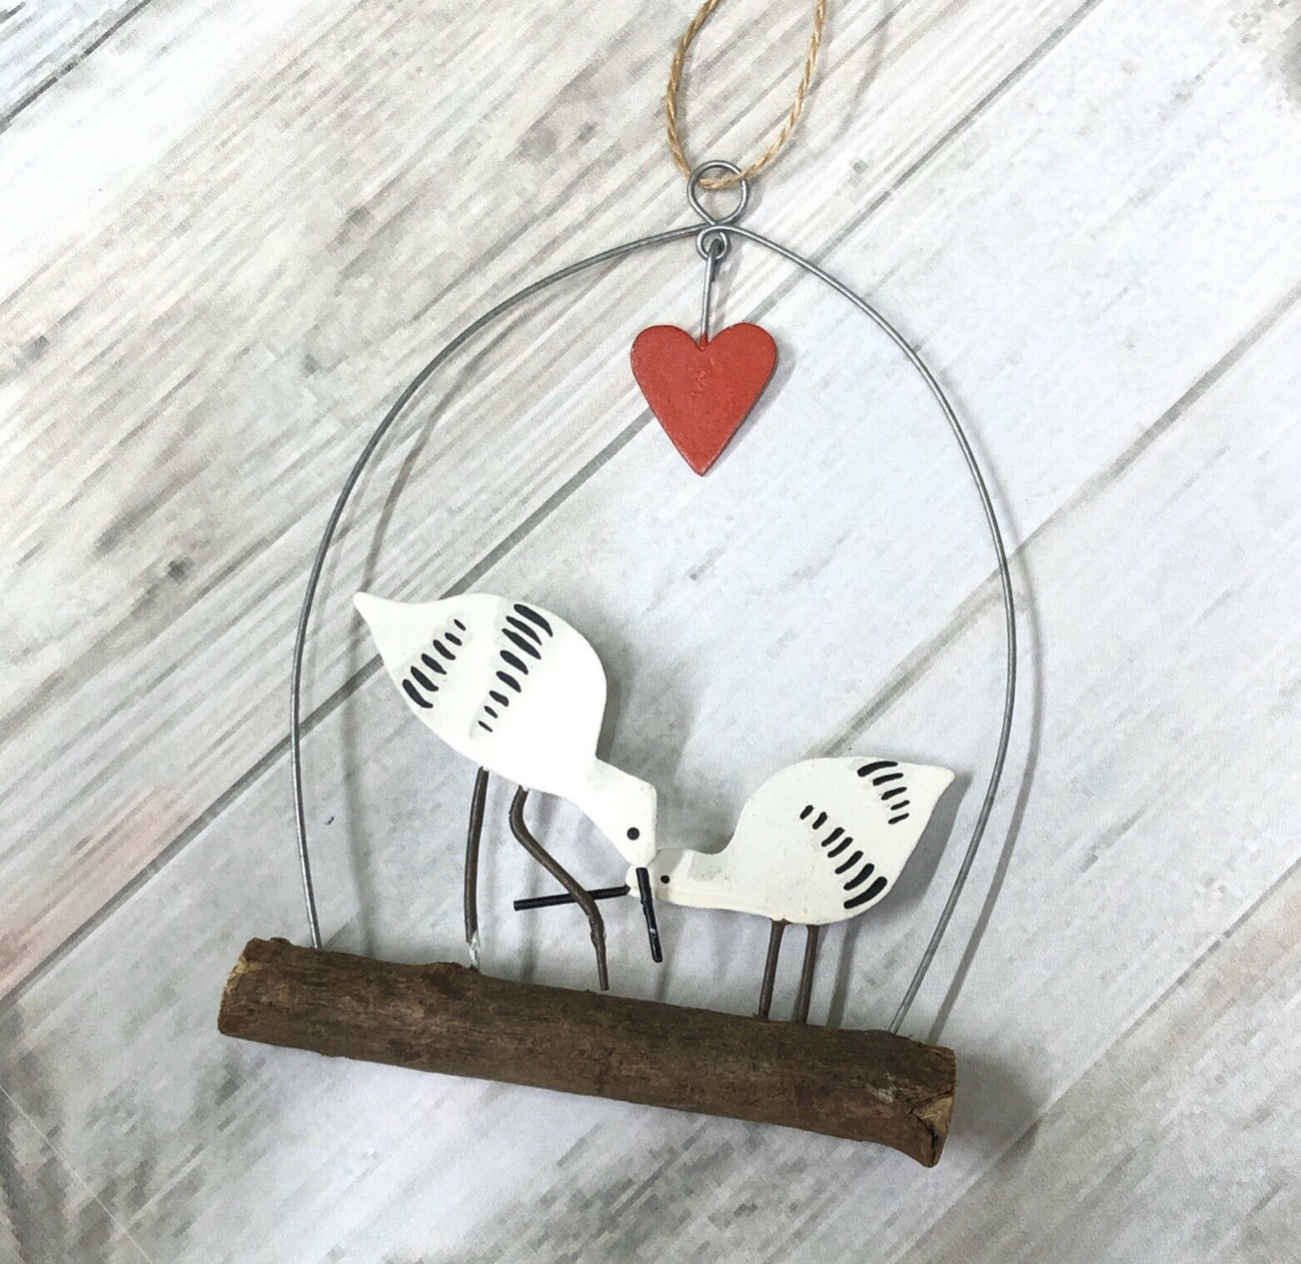 Avocet love story hanging decoration by Shoeless Joe